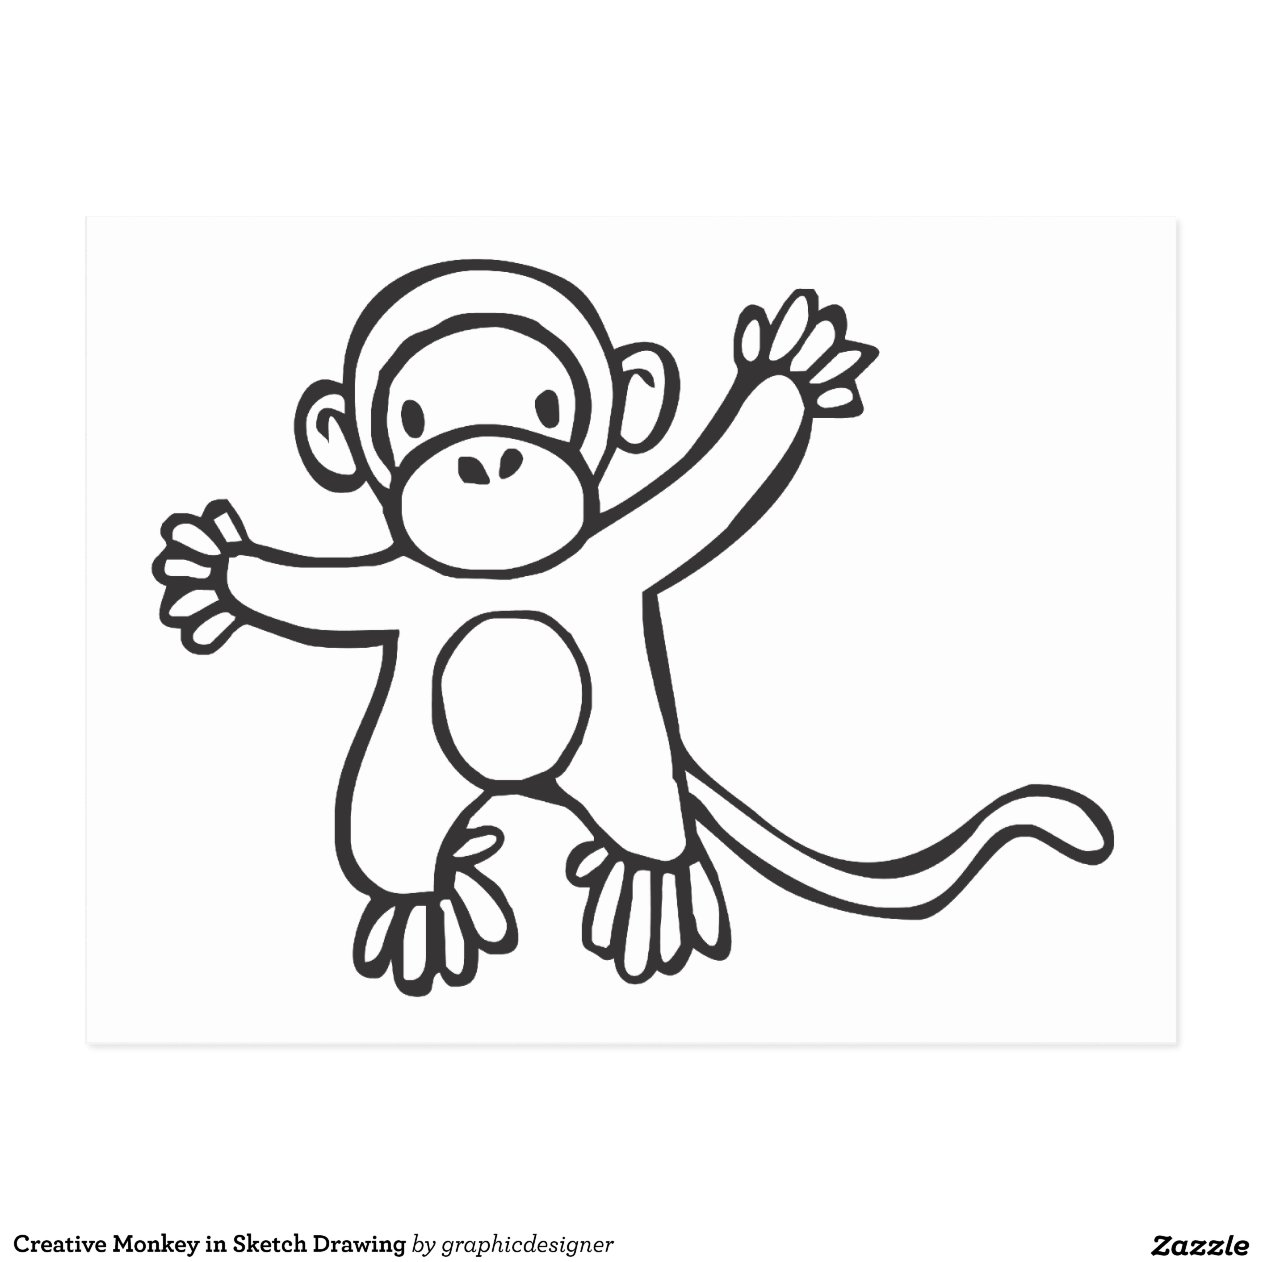 Creative Monkey In Sketch Easy Swirl Designs To Draw On Paper